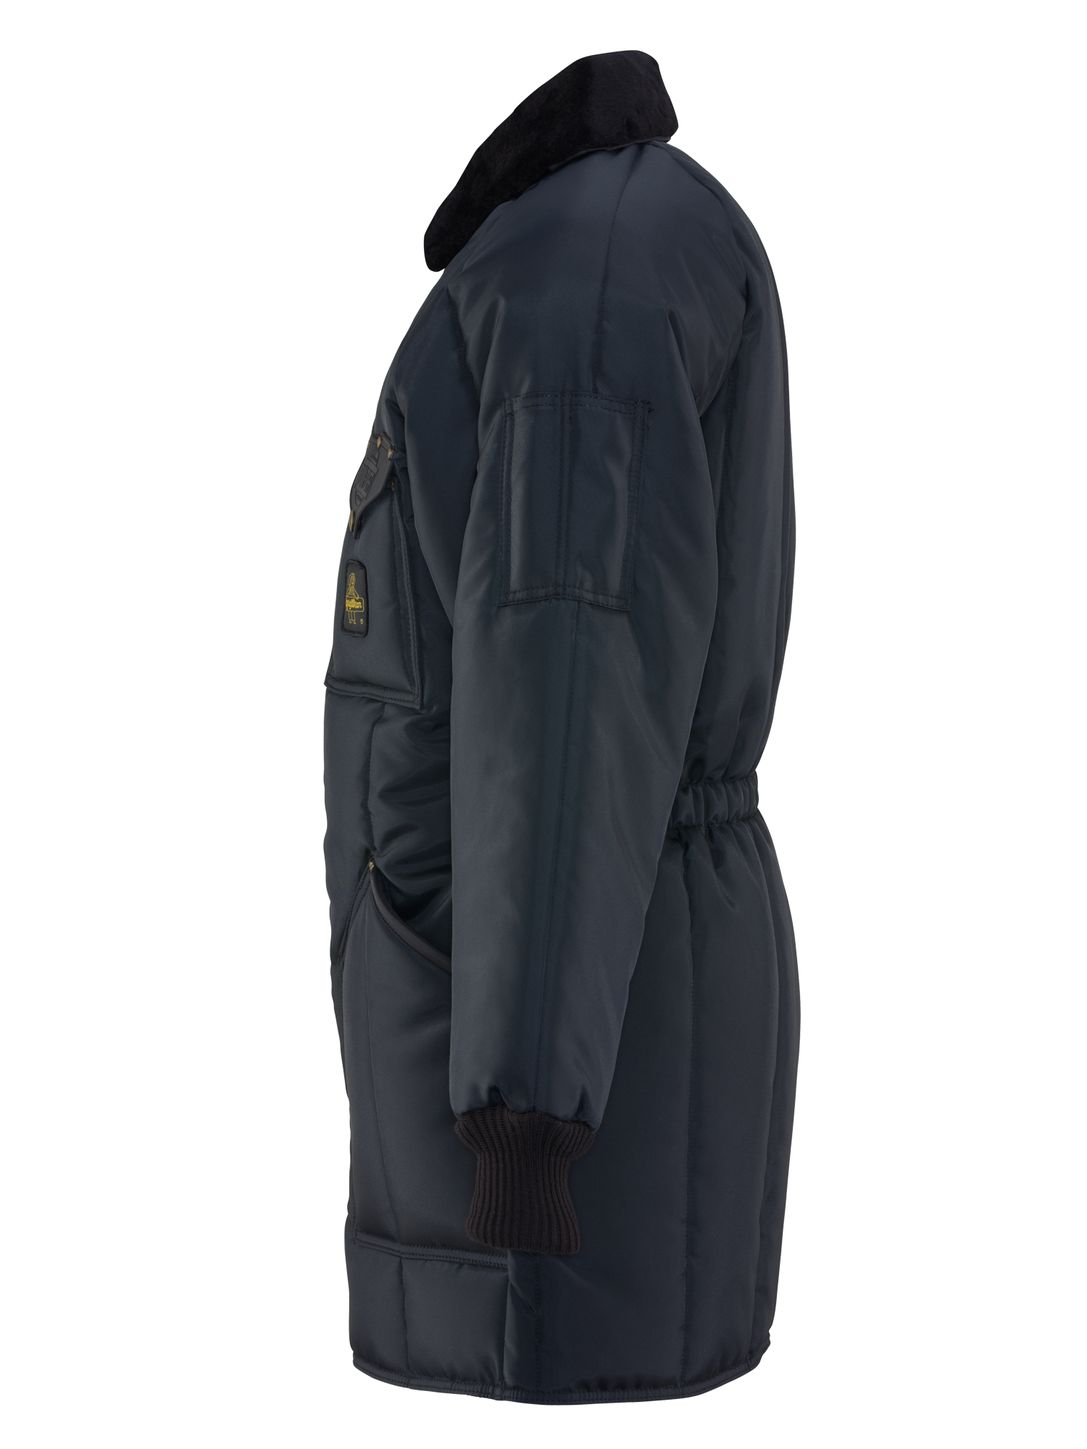 refrigiwear-0361-iron-tuff-winterseal-cold-weather-work-coat-thigh-length-side-view.jpg